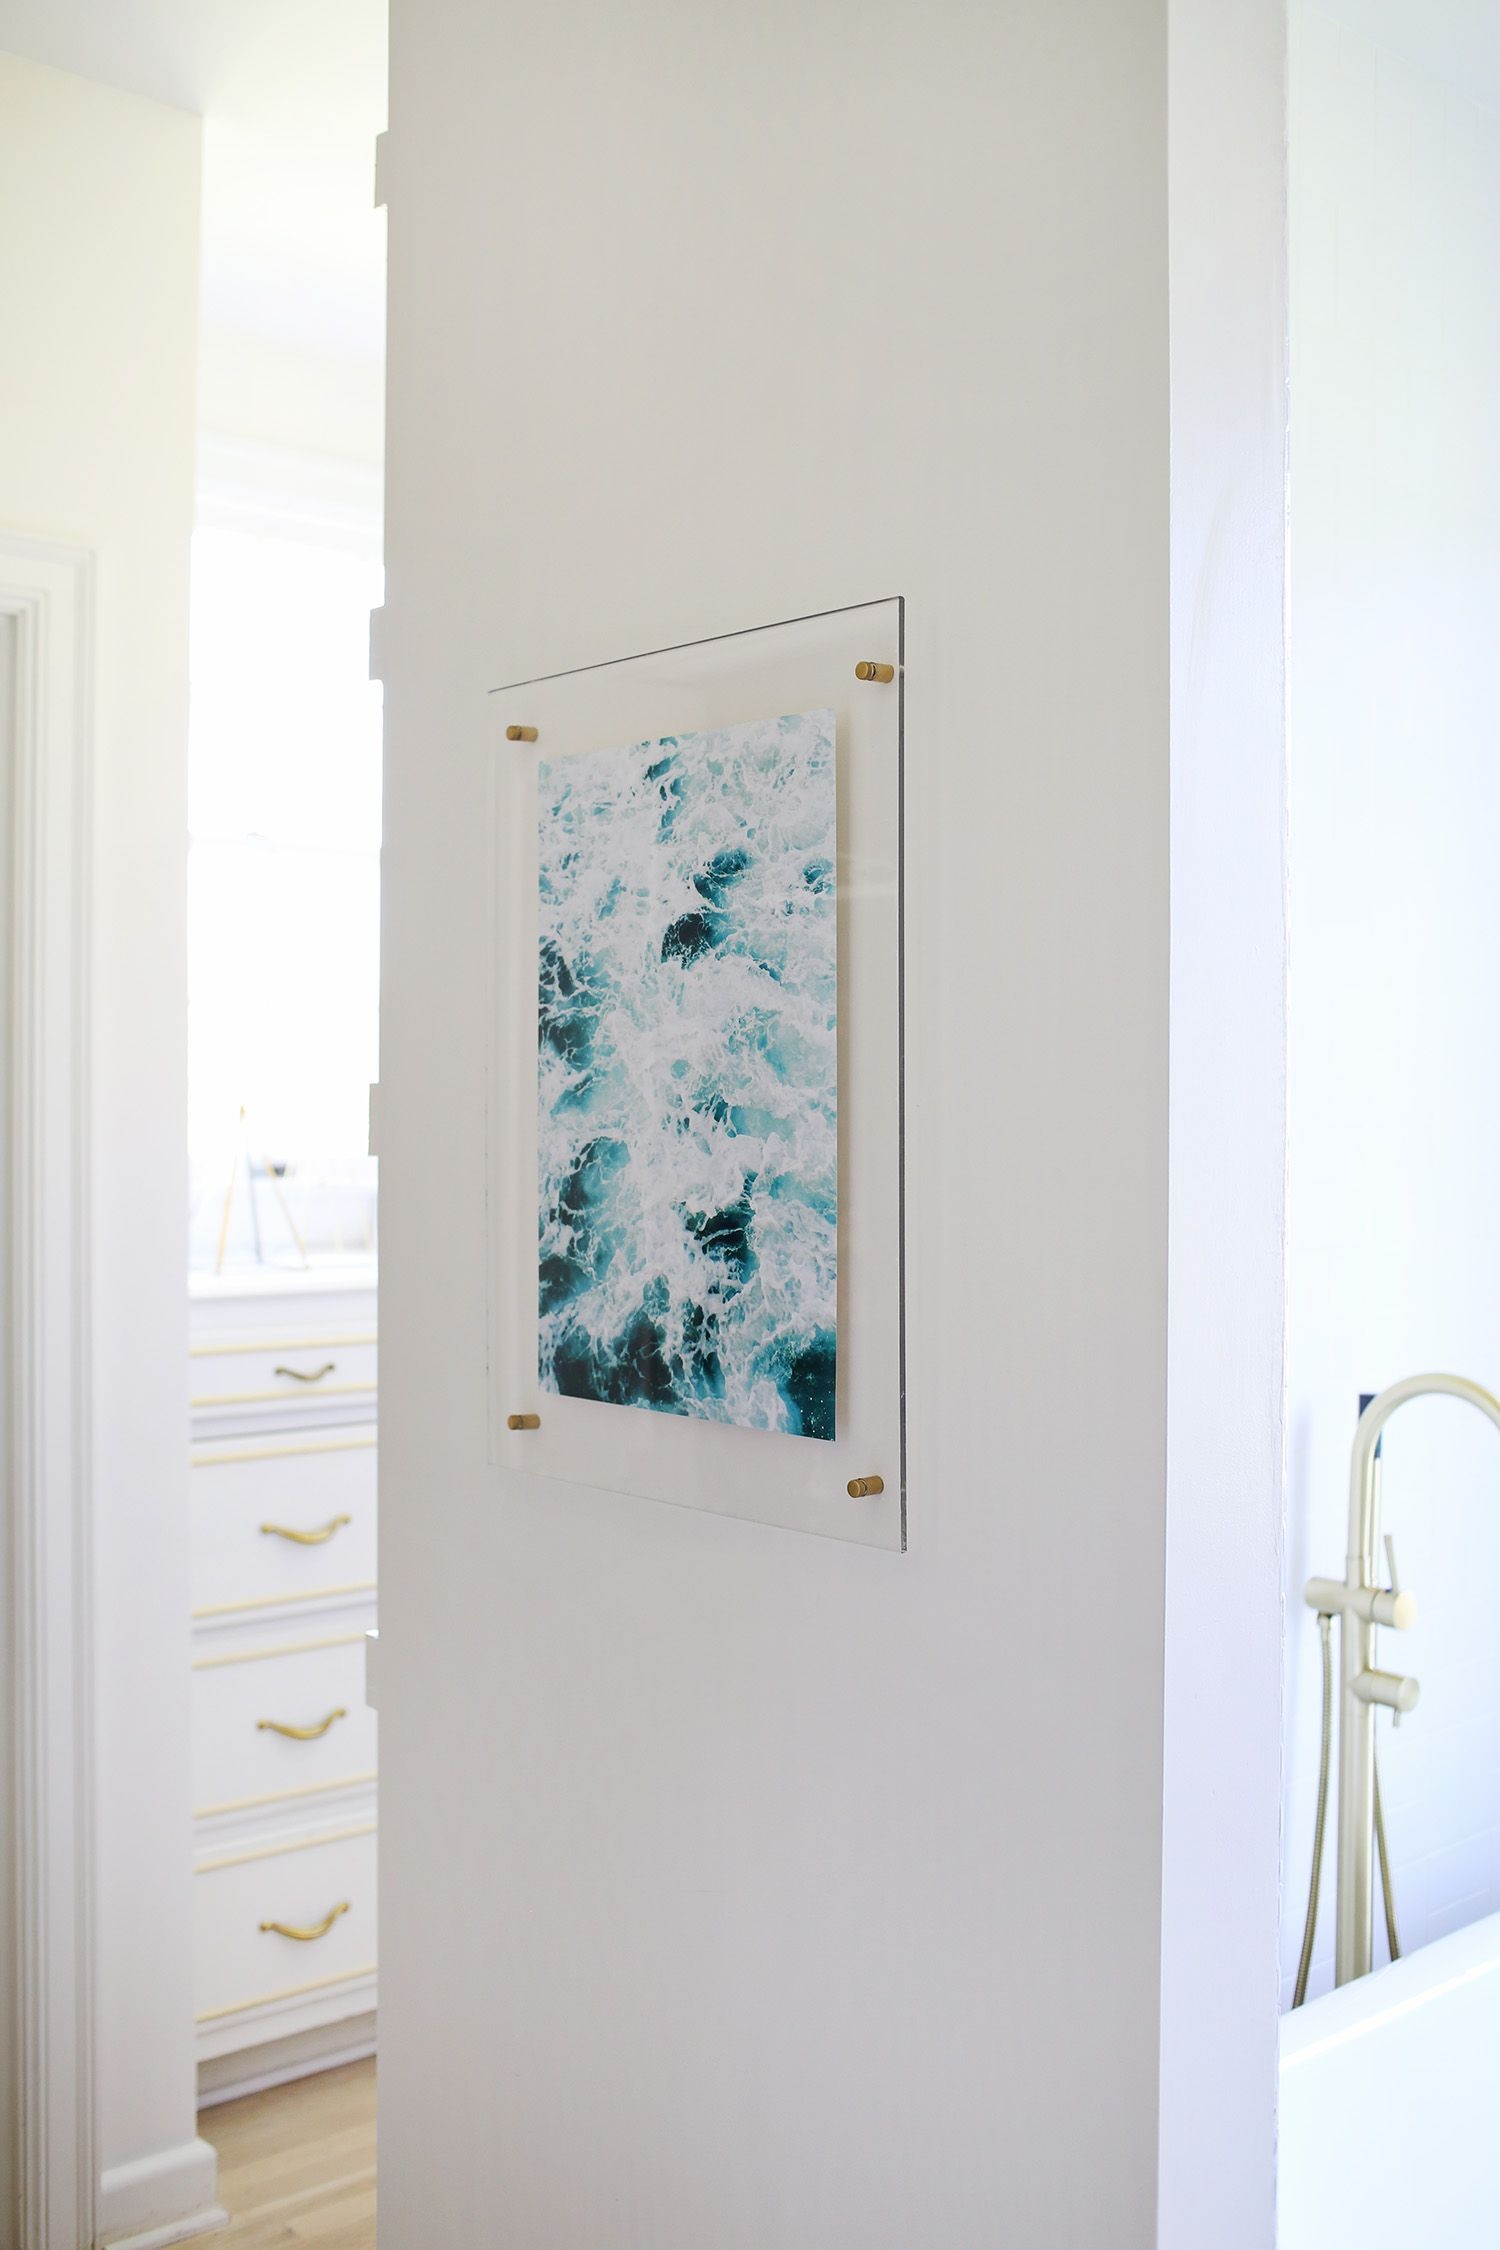 Floating Acrylic Frame DIY | Furnish | Pinterest | Diy frame ...